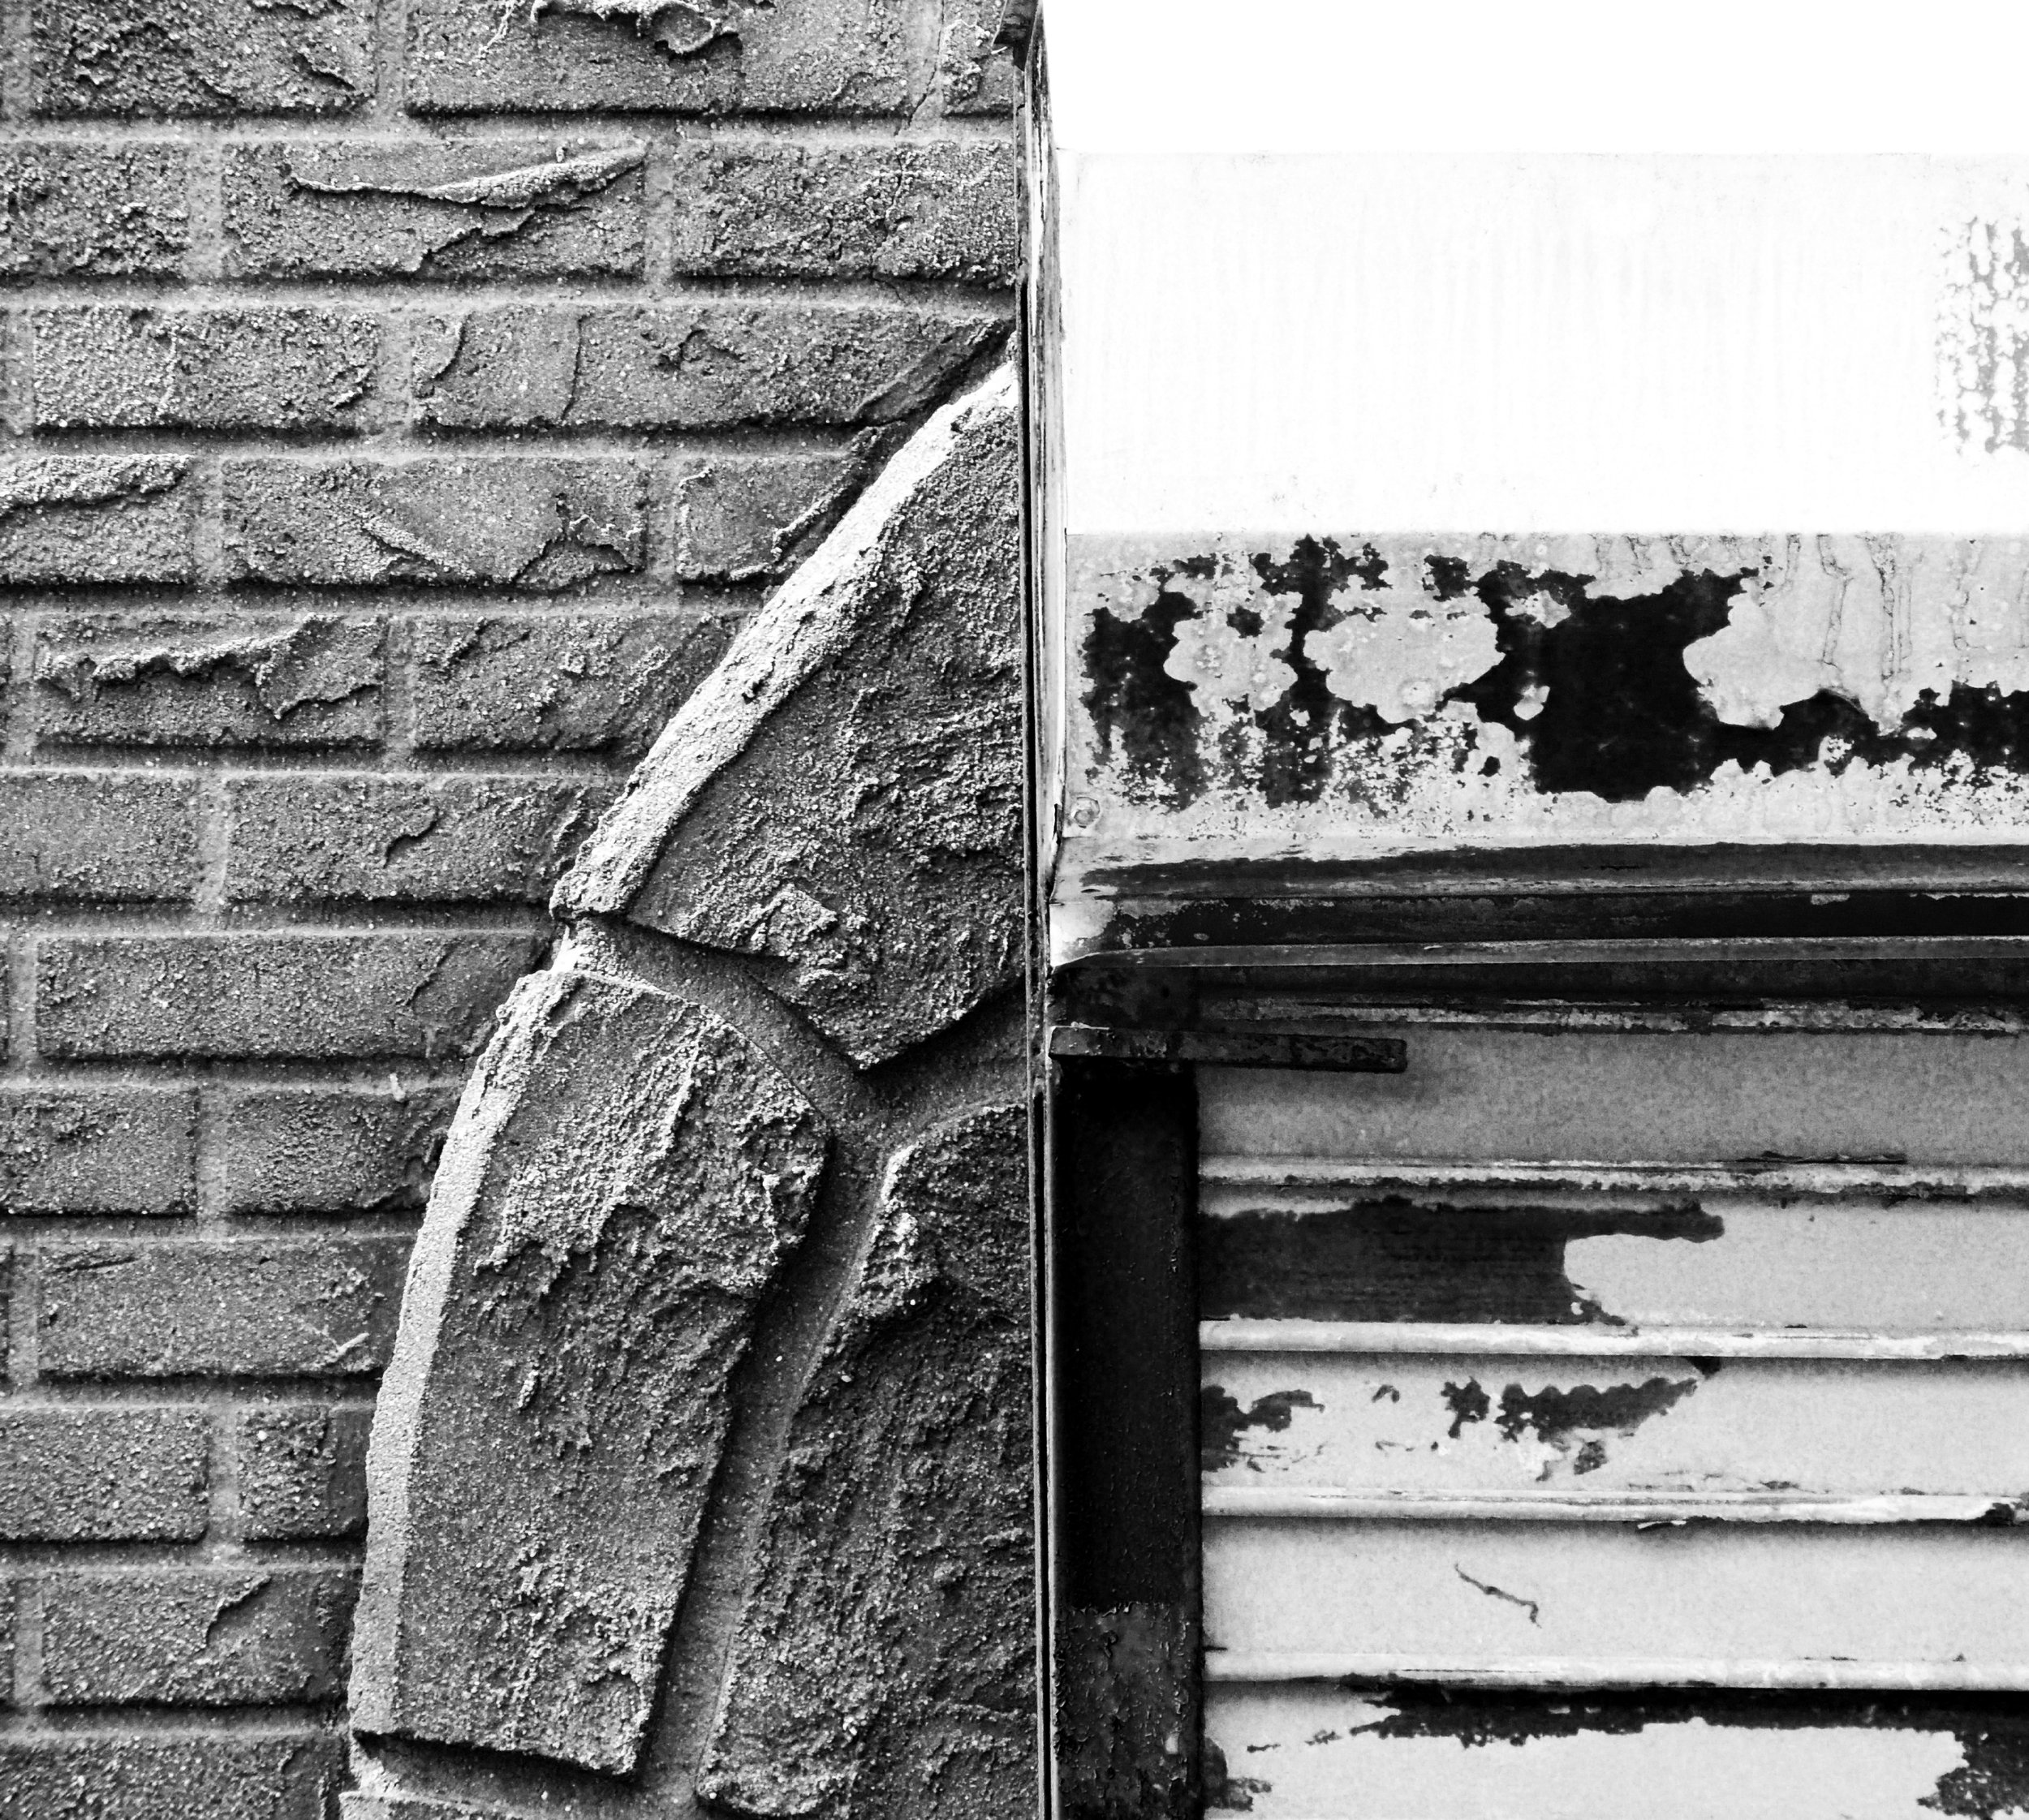 Black and White urban texture photograph